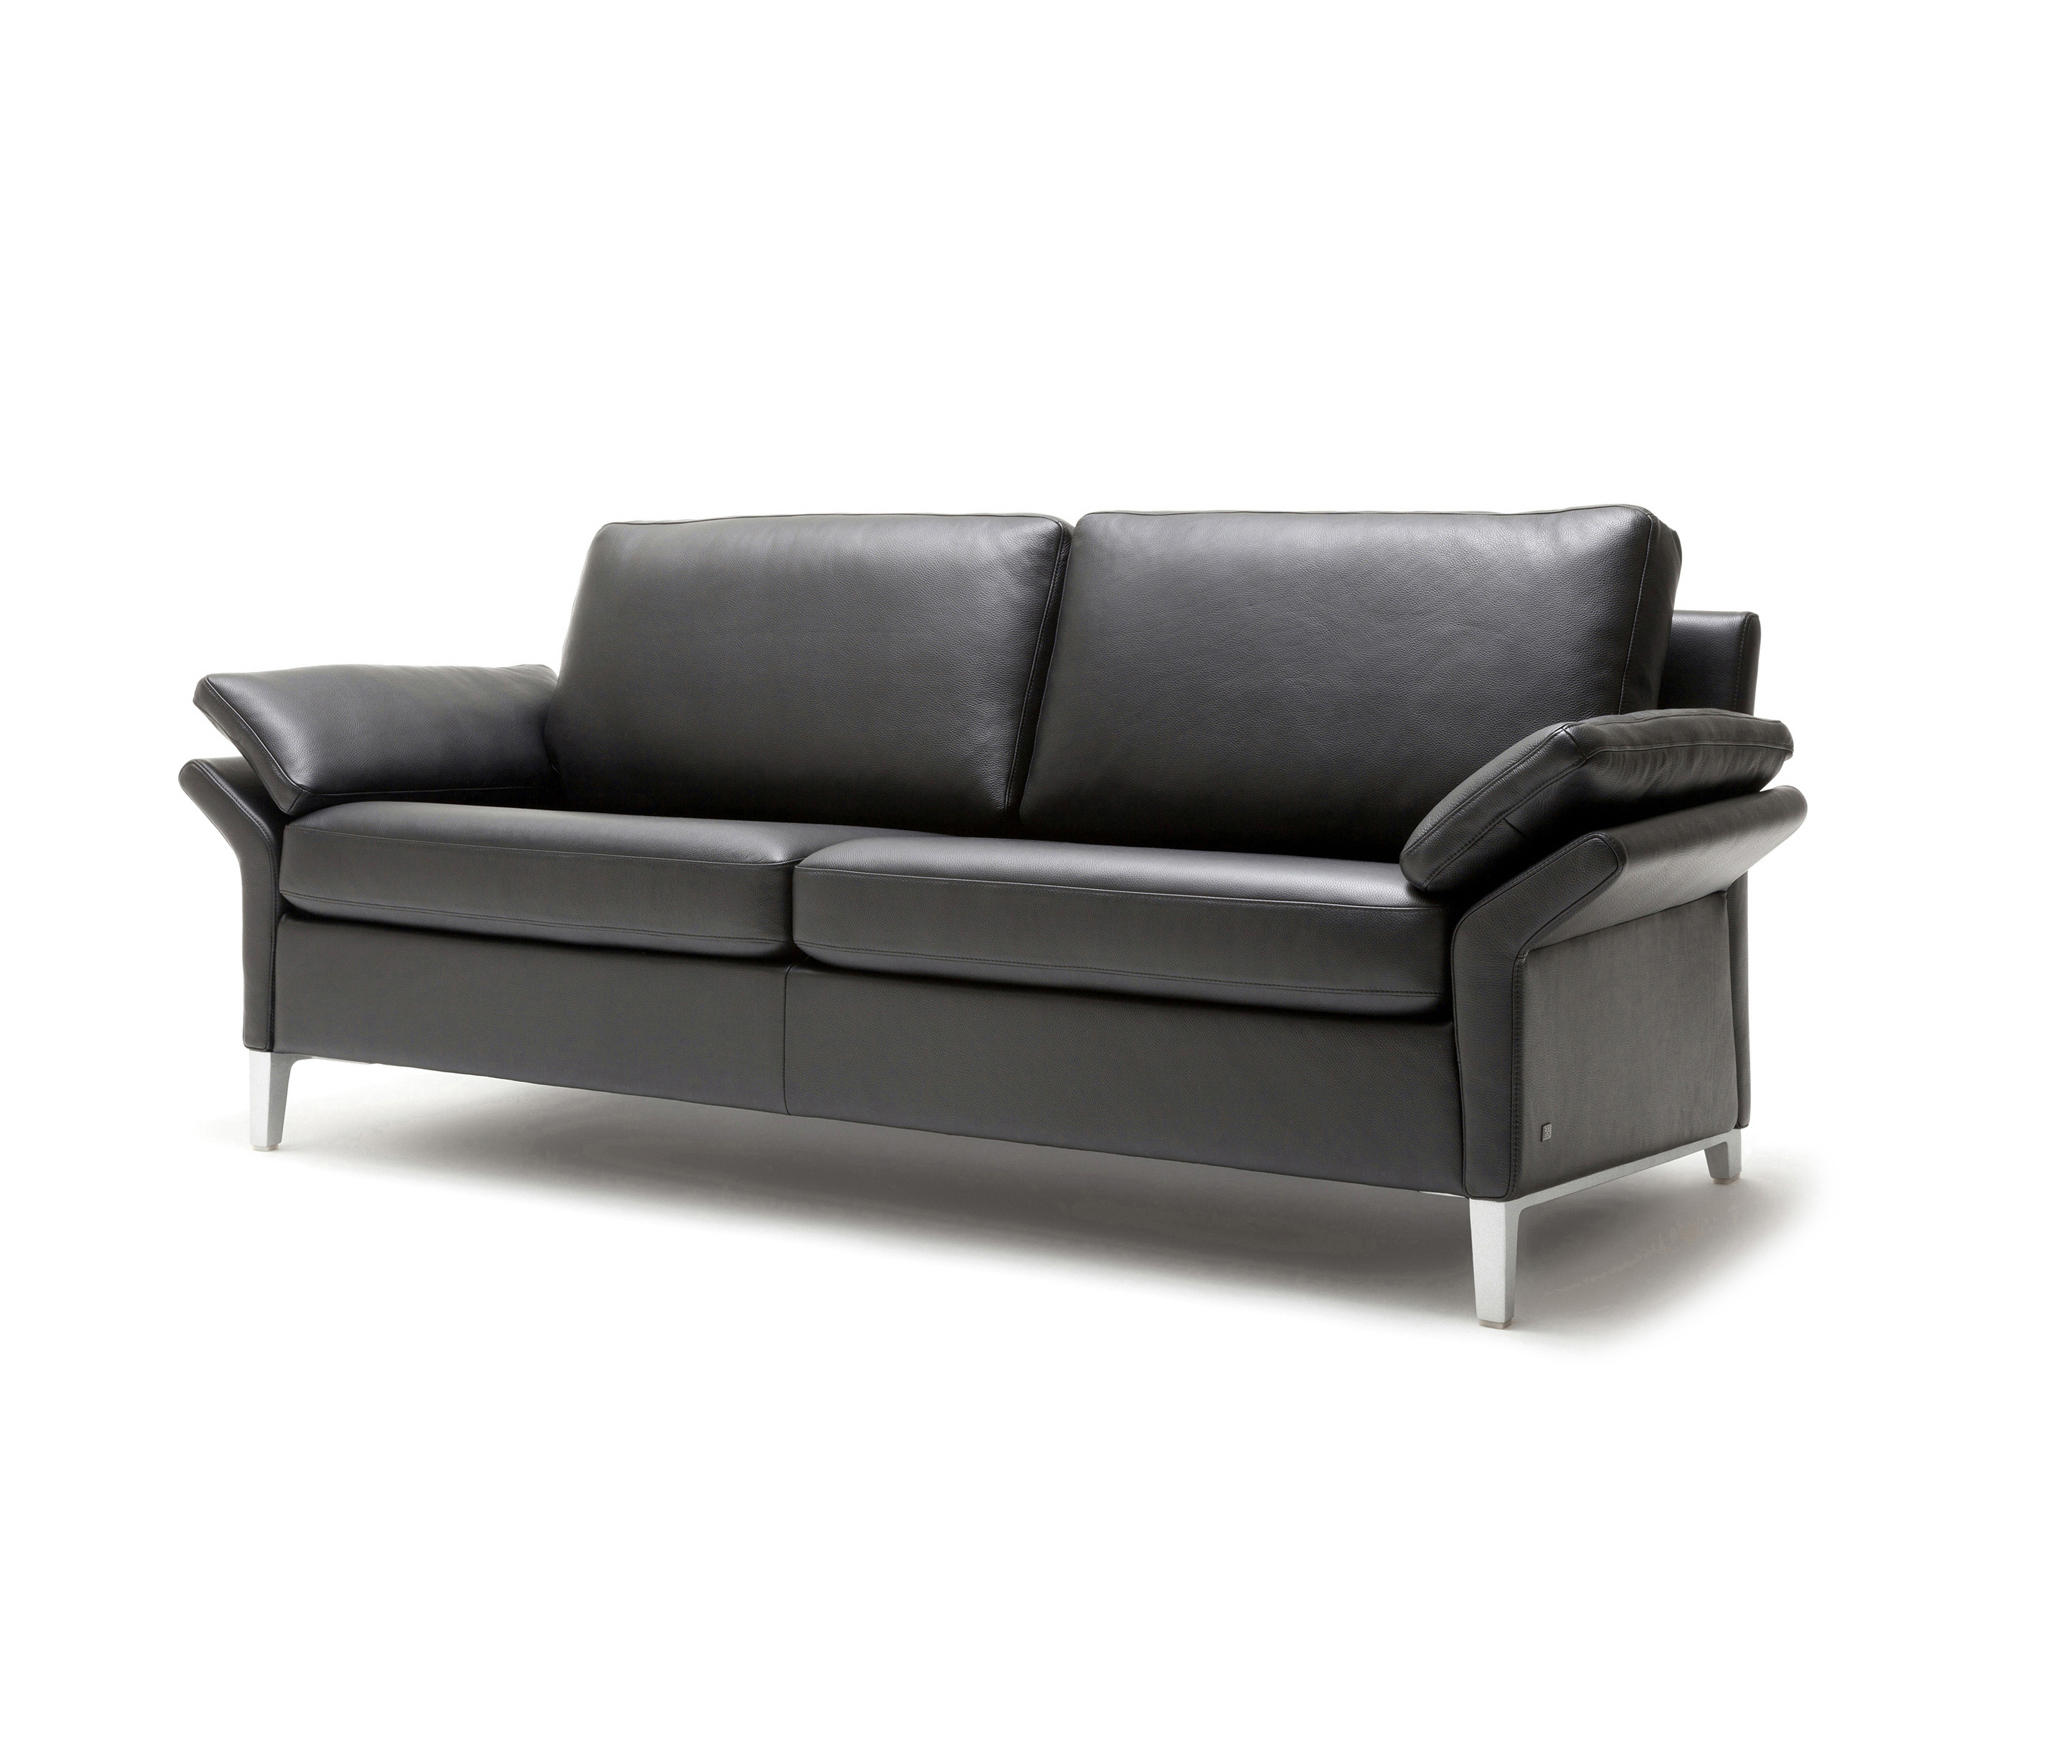 Rolf benz 3300 loungesofas von rolf benz architonic for Rolf benz katalog